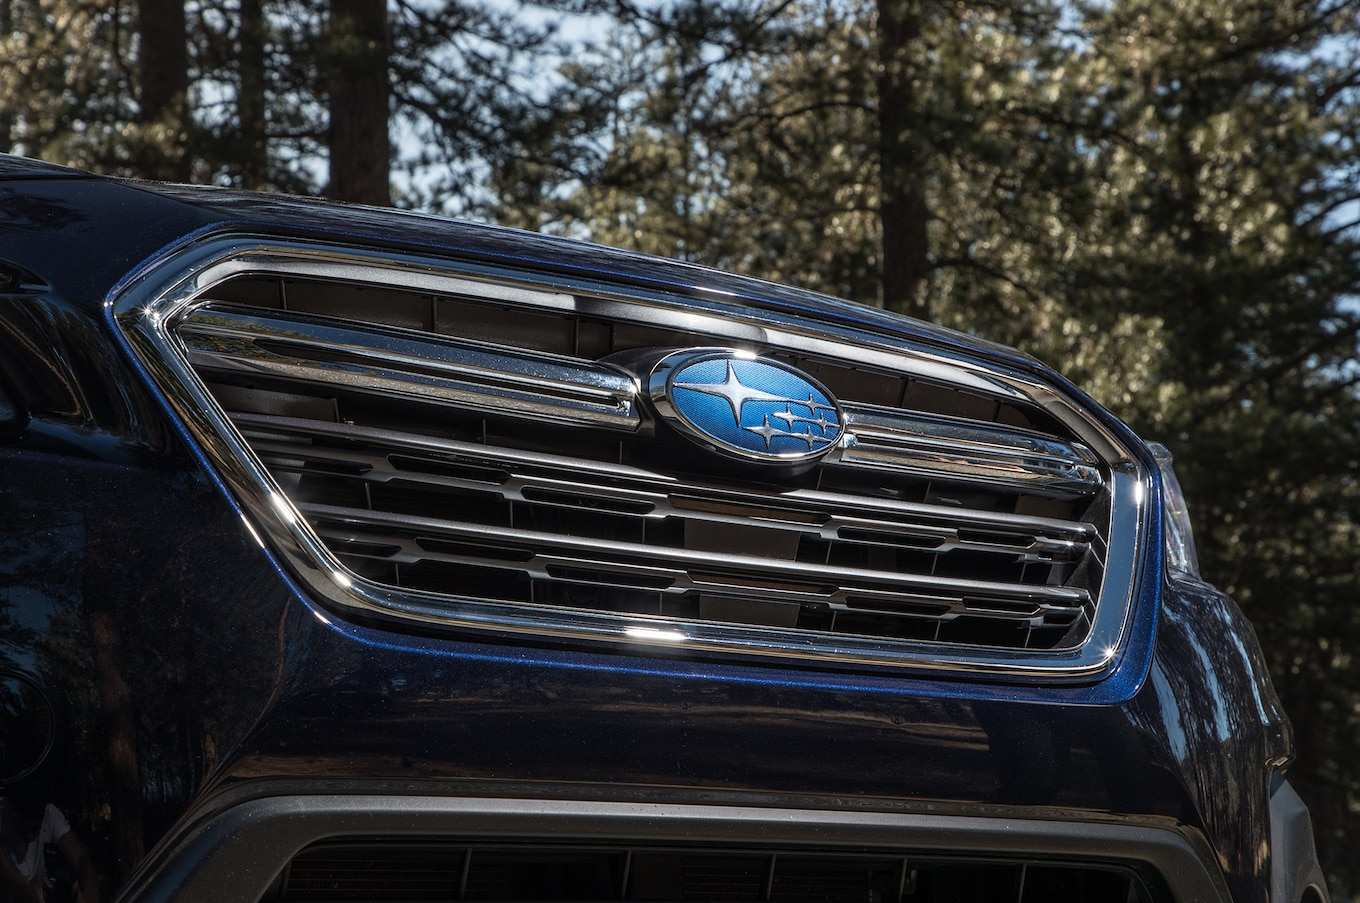 22 Great 2020 Subaru Outback Turbo Hybrid Images for 2020 Subaru Outback Turbo Hybrid